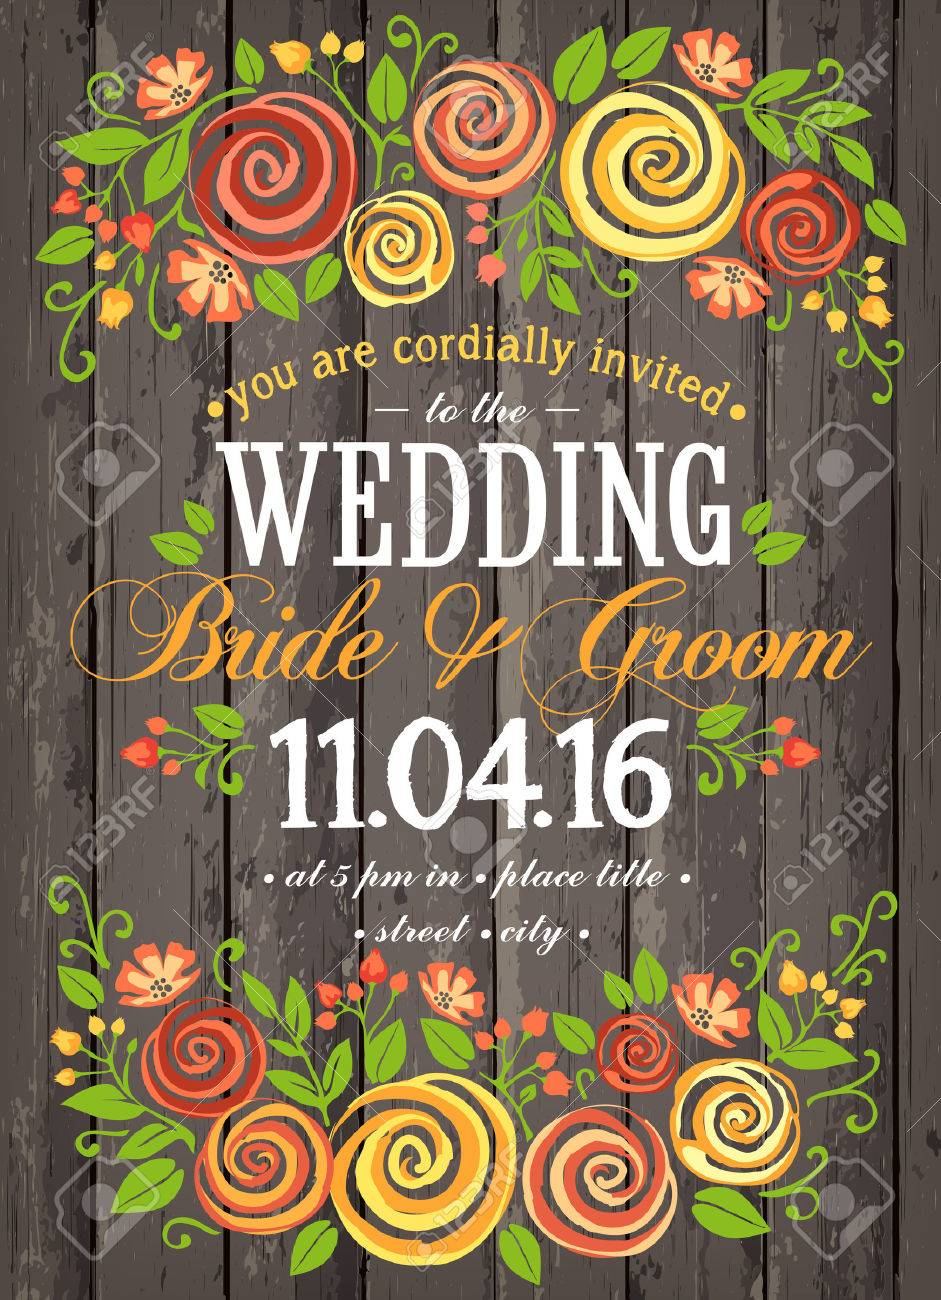 Wedding invitation card with beuty floral background inspiration wedding invitation card with beuty floral background inspiration card for wedding date birthday stopboris Choice Image